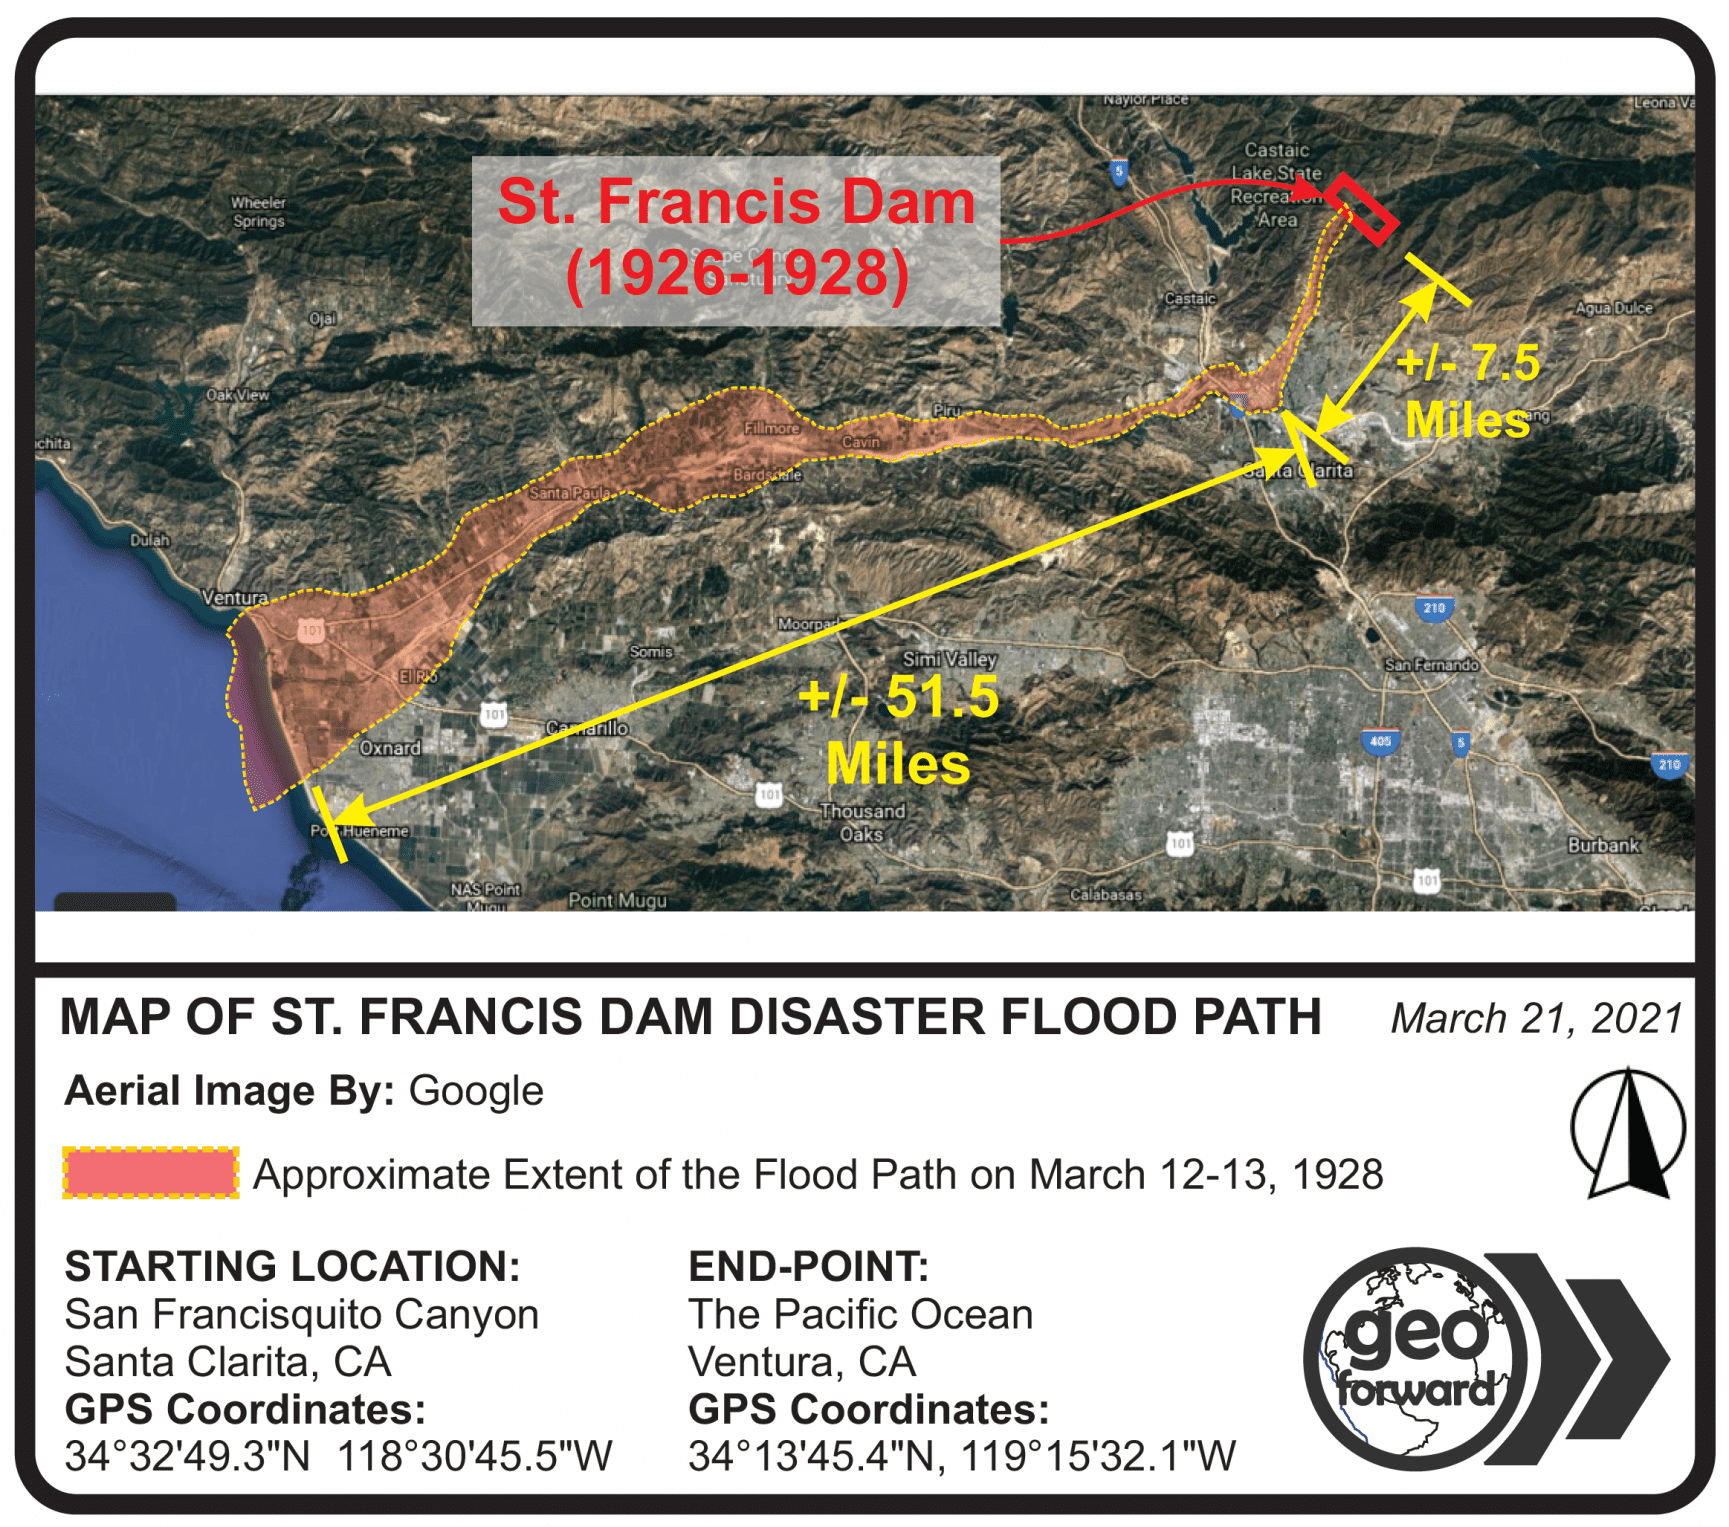 Map of St. Francis Dam Disaster Flood Path by Geo Forward 2021